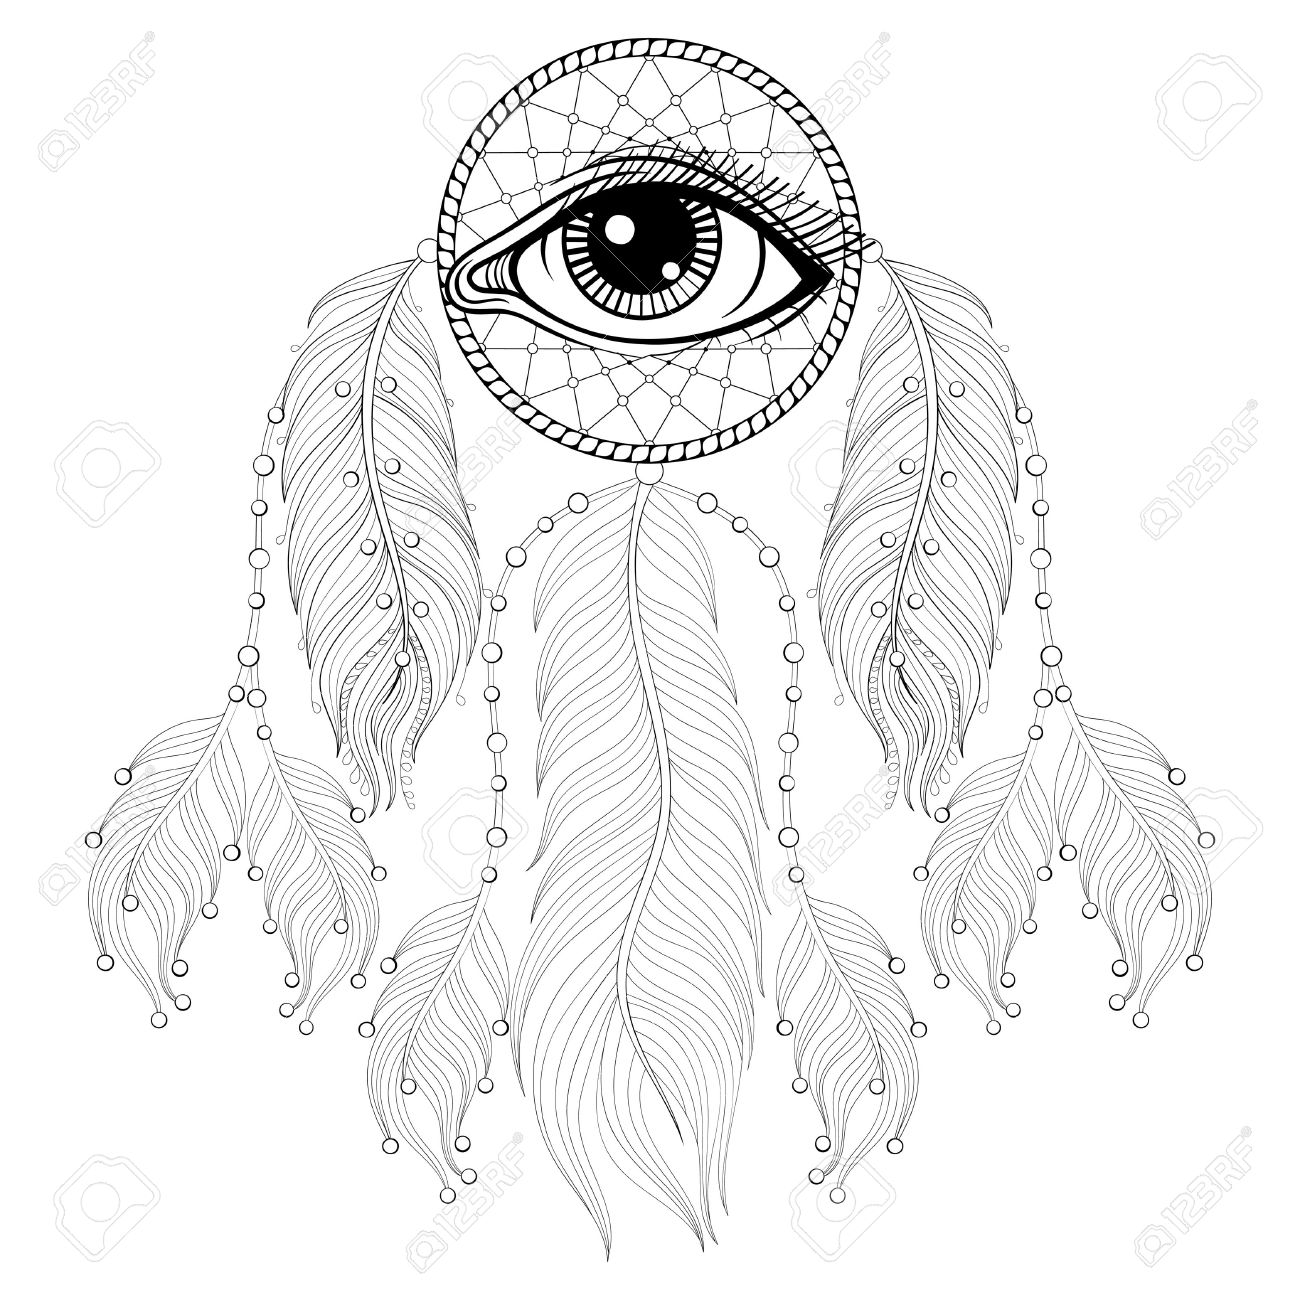 Hand drawn bohemian dreamcatcher with eye native american indian talisman for adult coloring pages